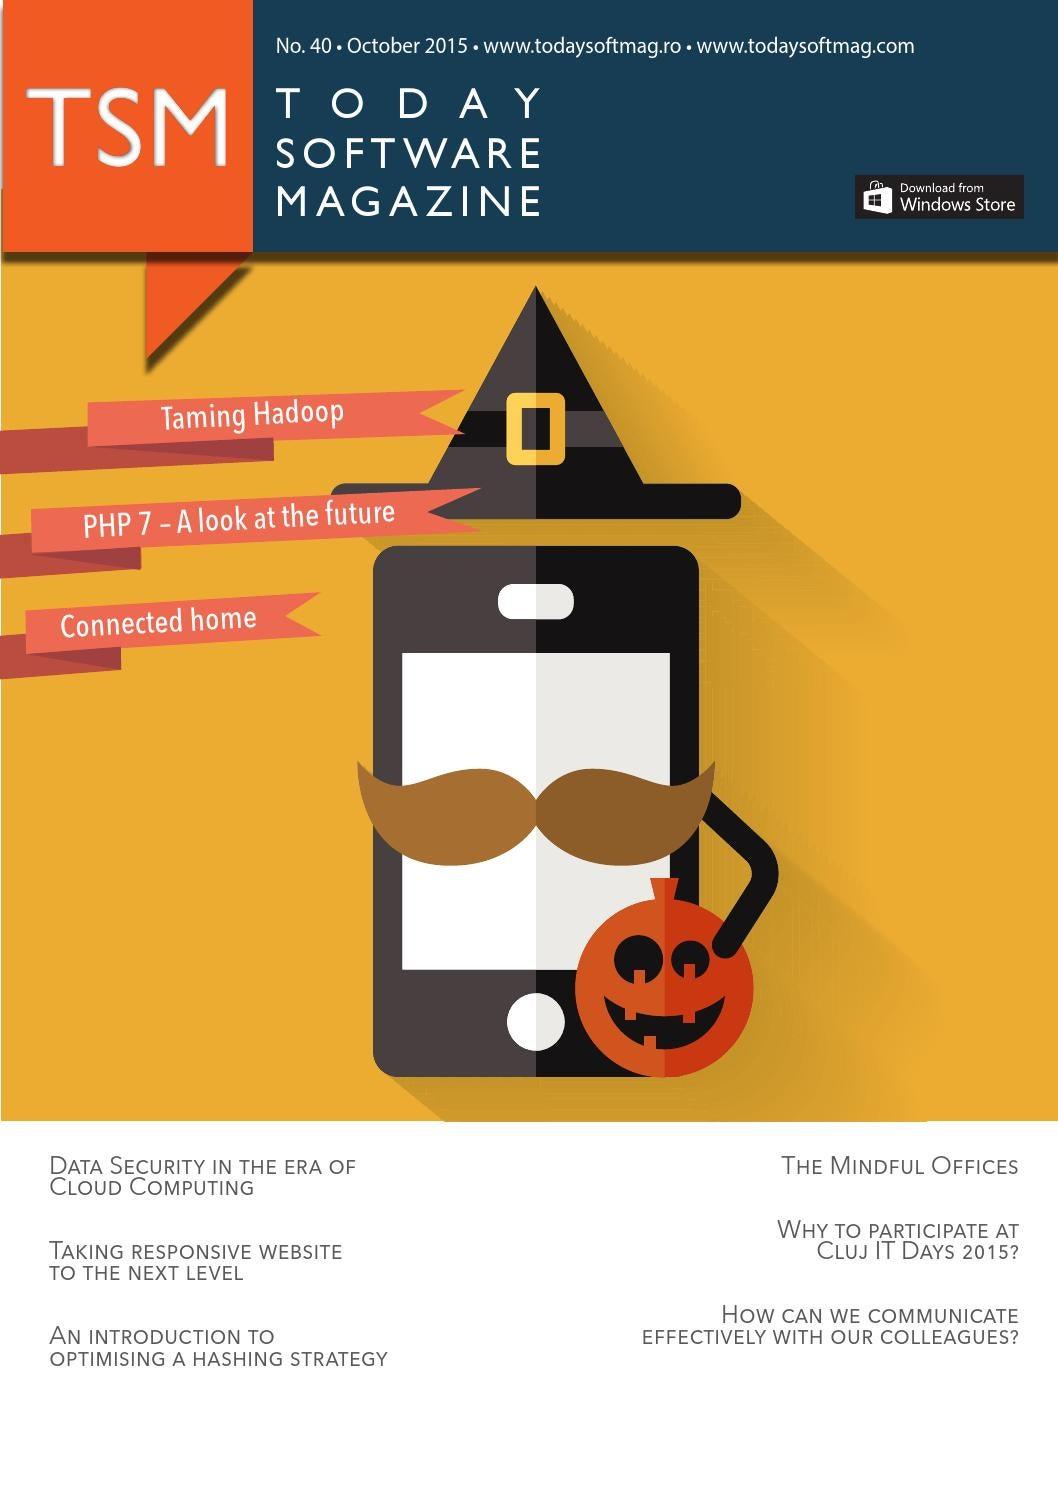 Issue 40 - October 2015 - Today Software Magazine by Today